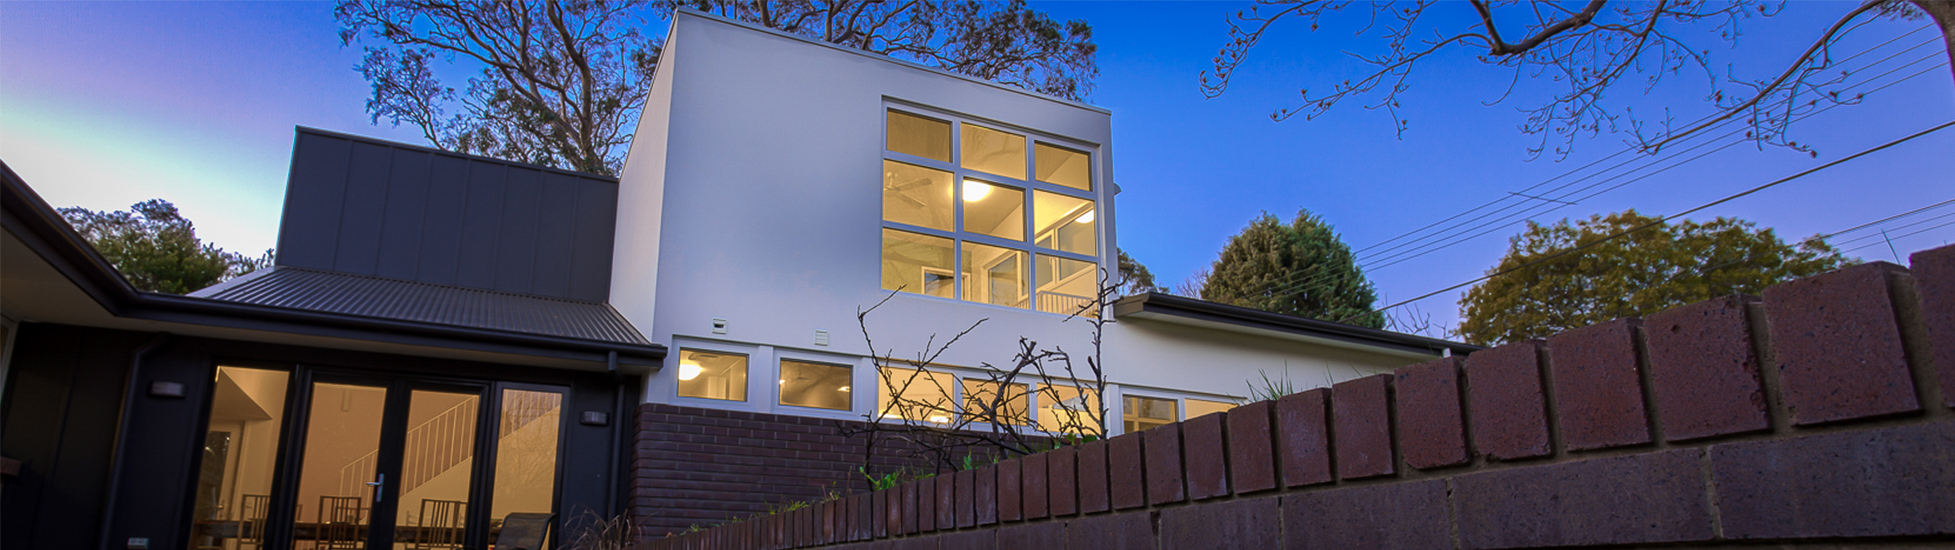 Wedler contracting canberra s architectural alterations for Architecture firms canberra